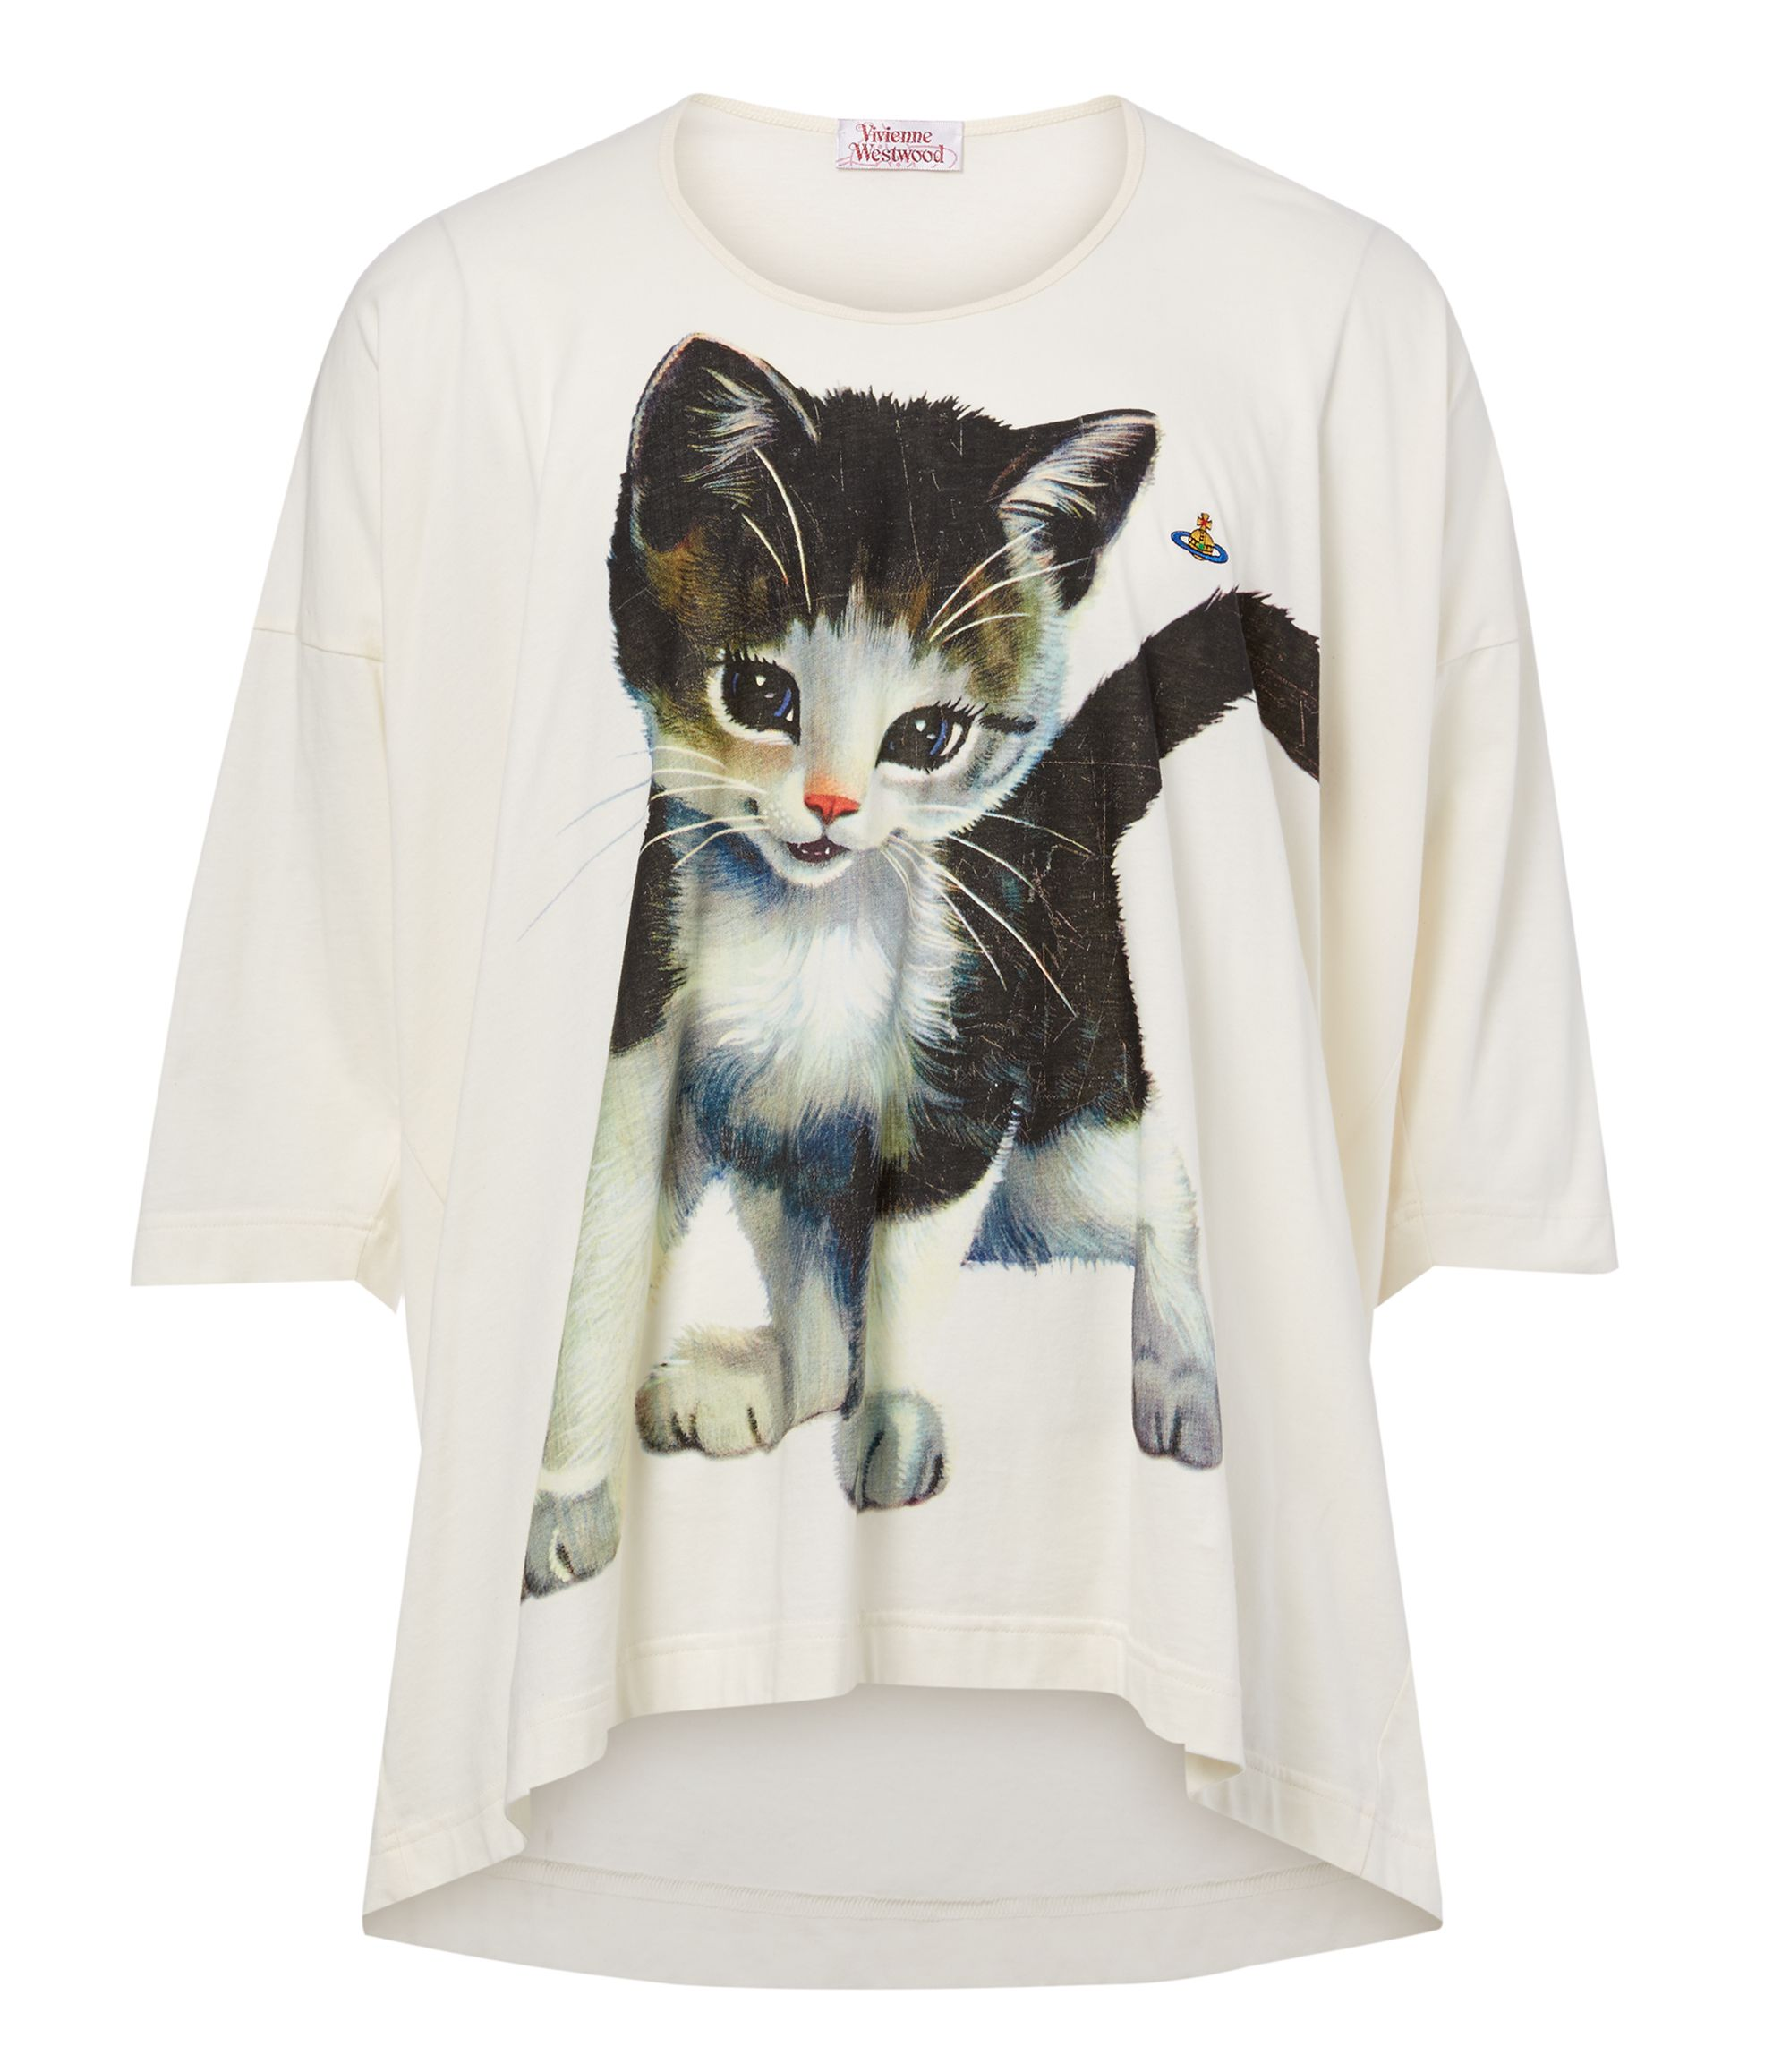 Pin By Bubble Bourke On Vivienne Westwood Vivienne Westwood T Shirt Vivienne Westwood Tops Beige T Shirts